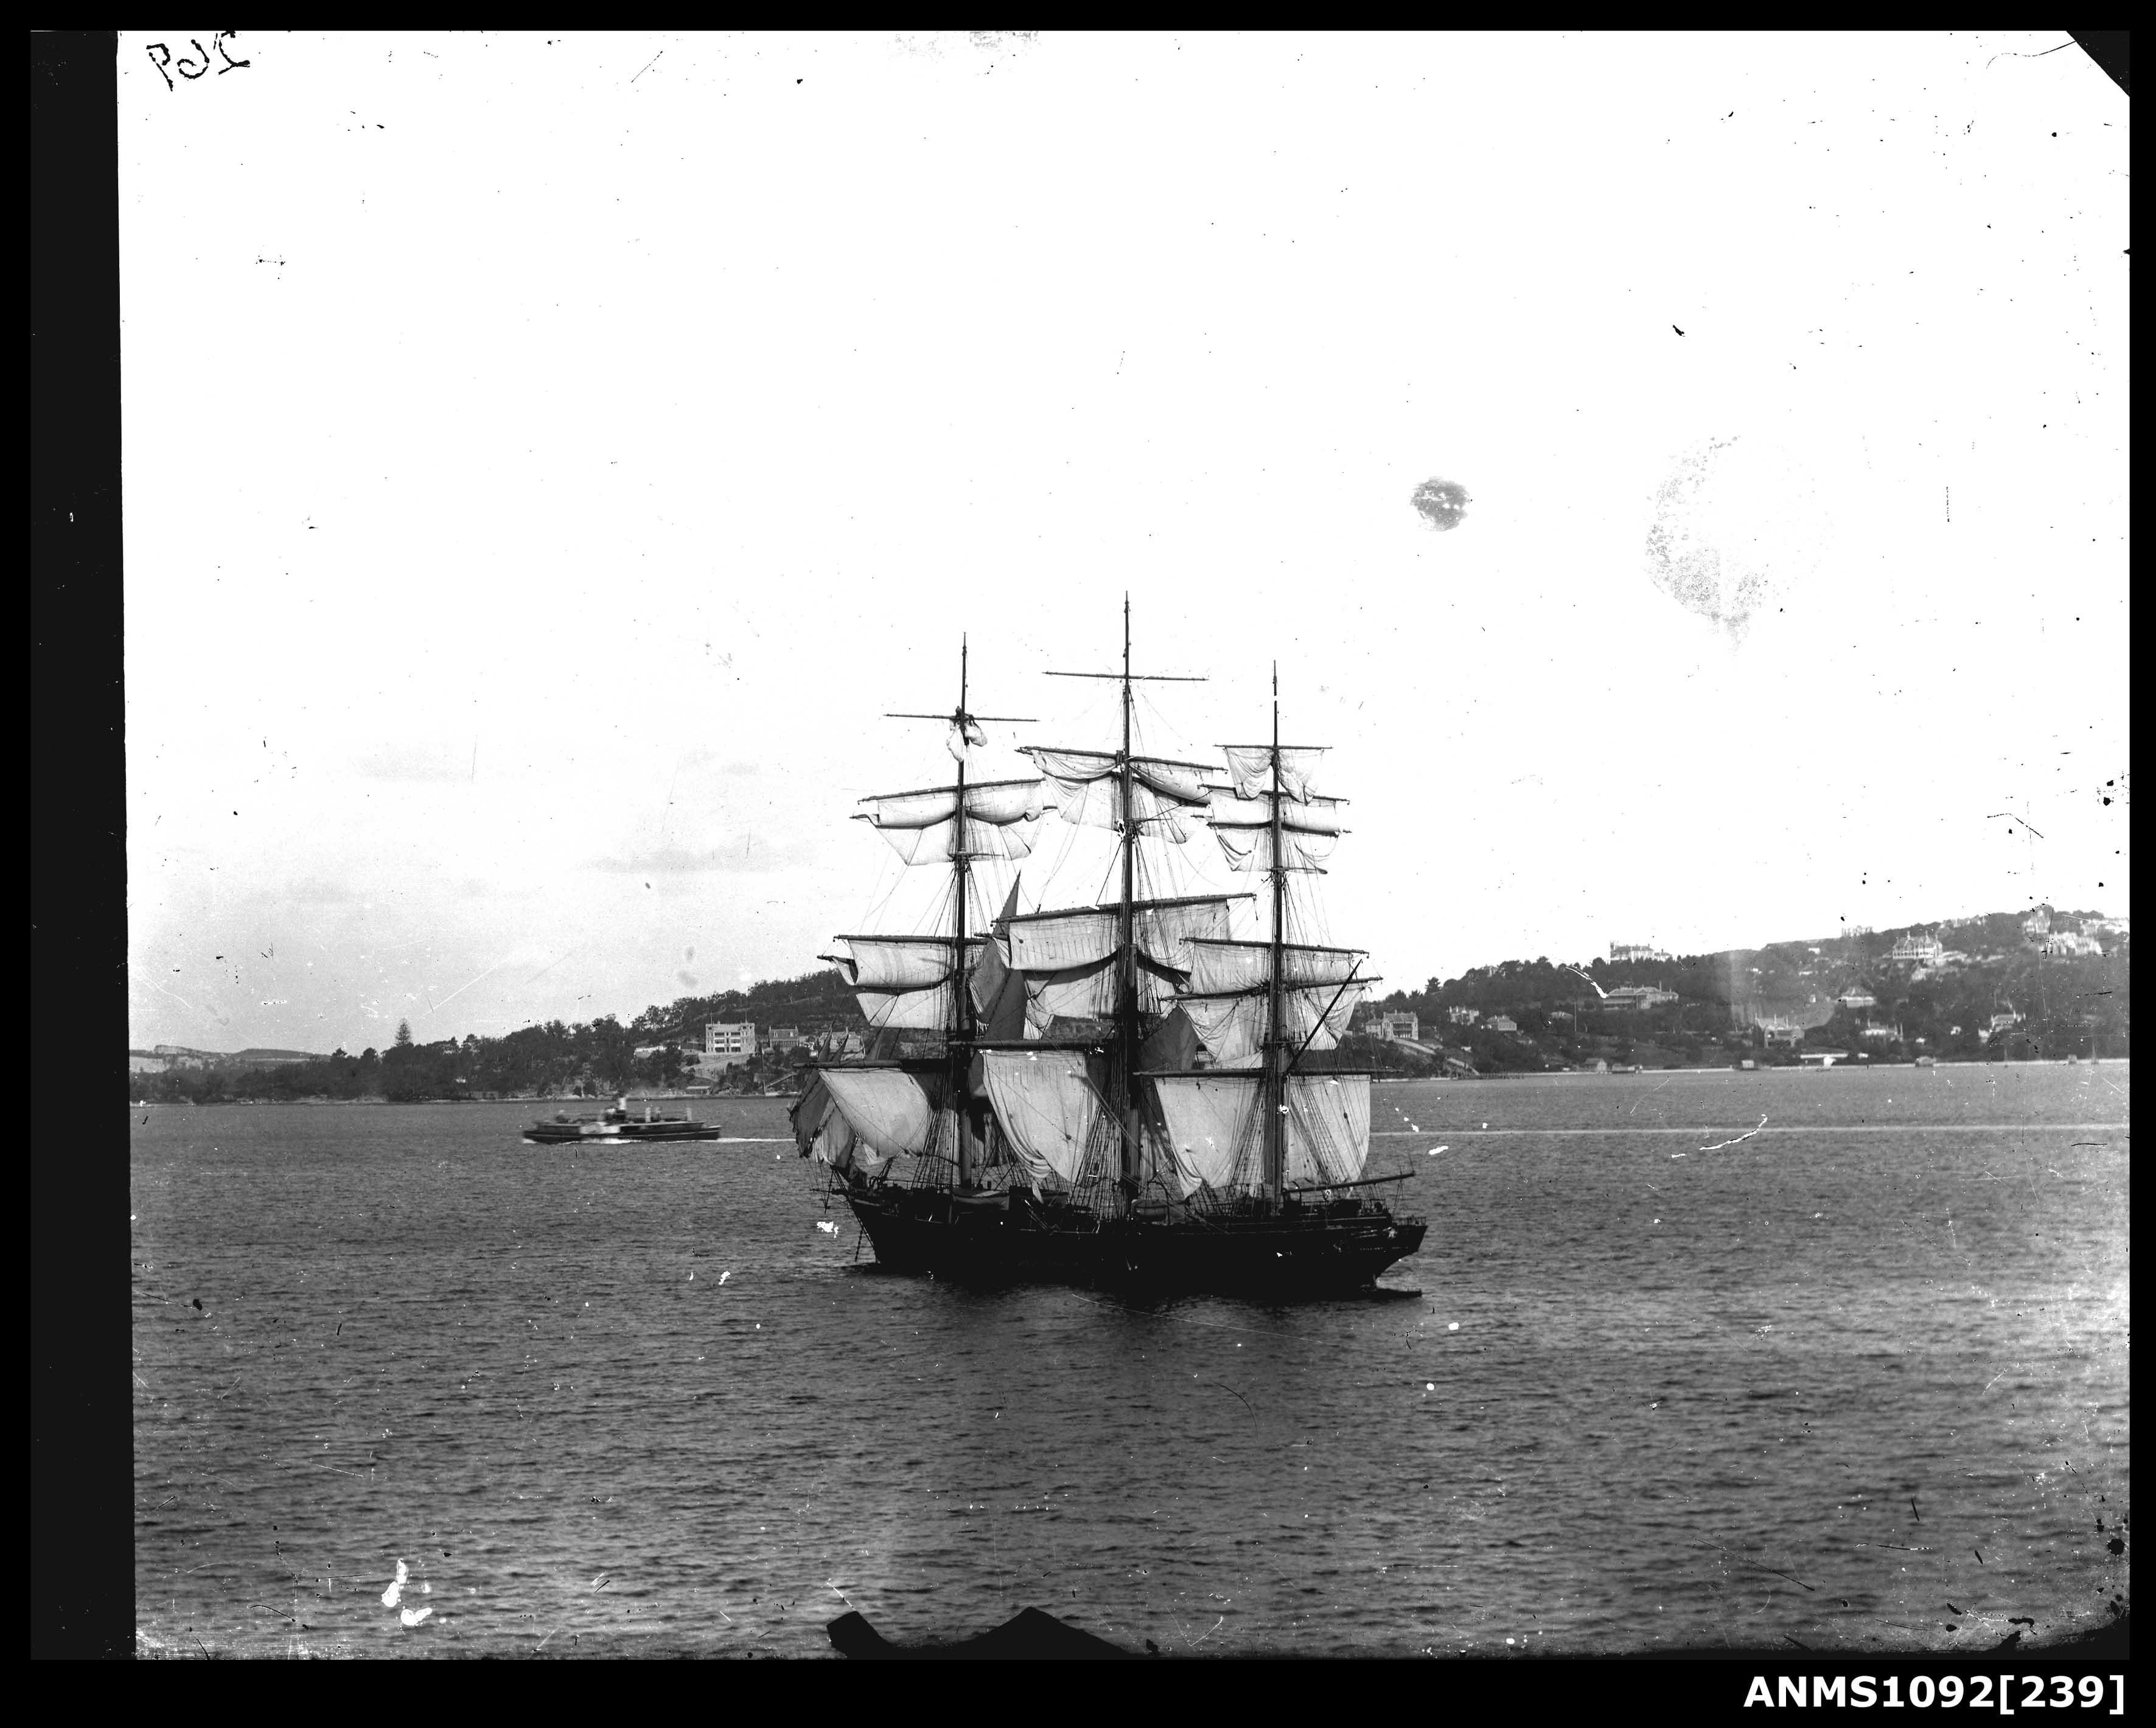 Three masted ship with unfurled sails